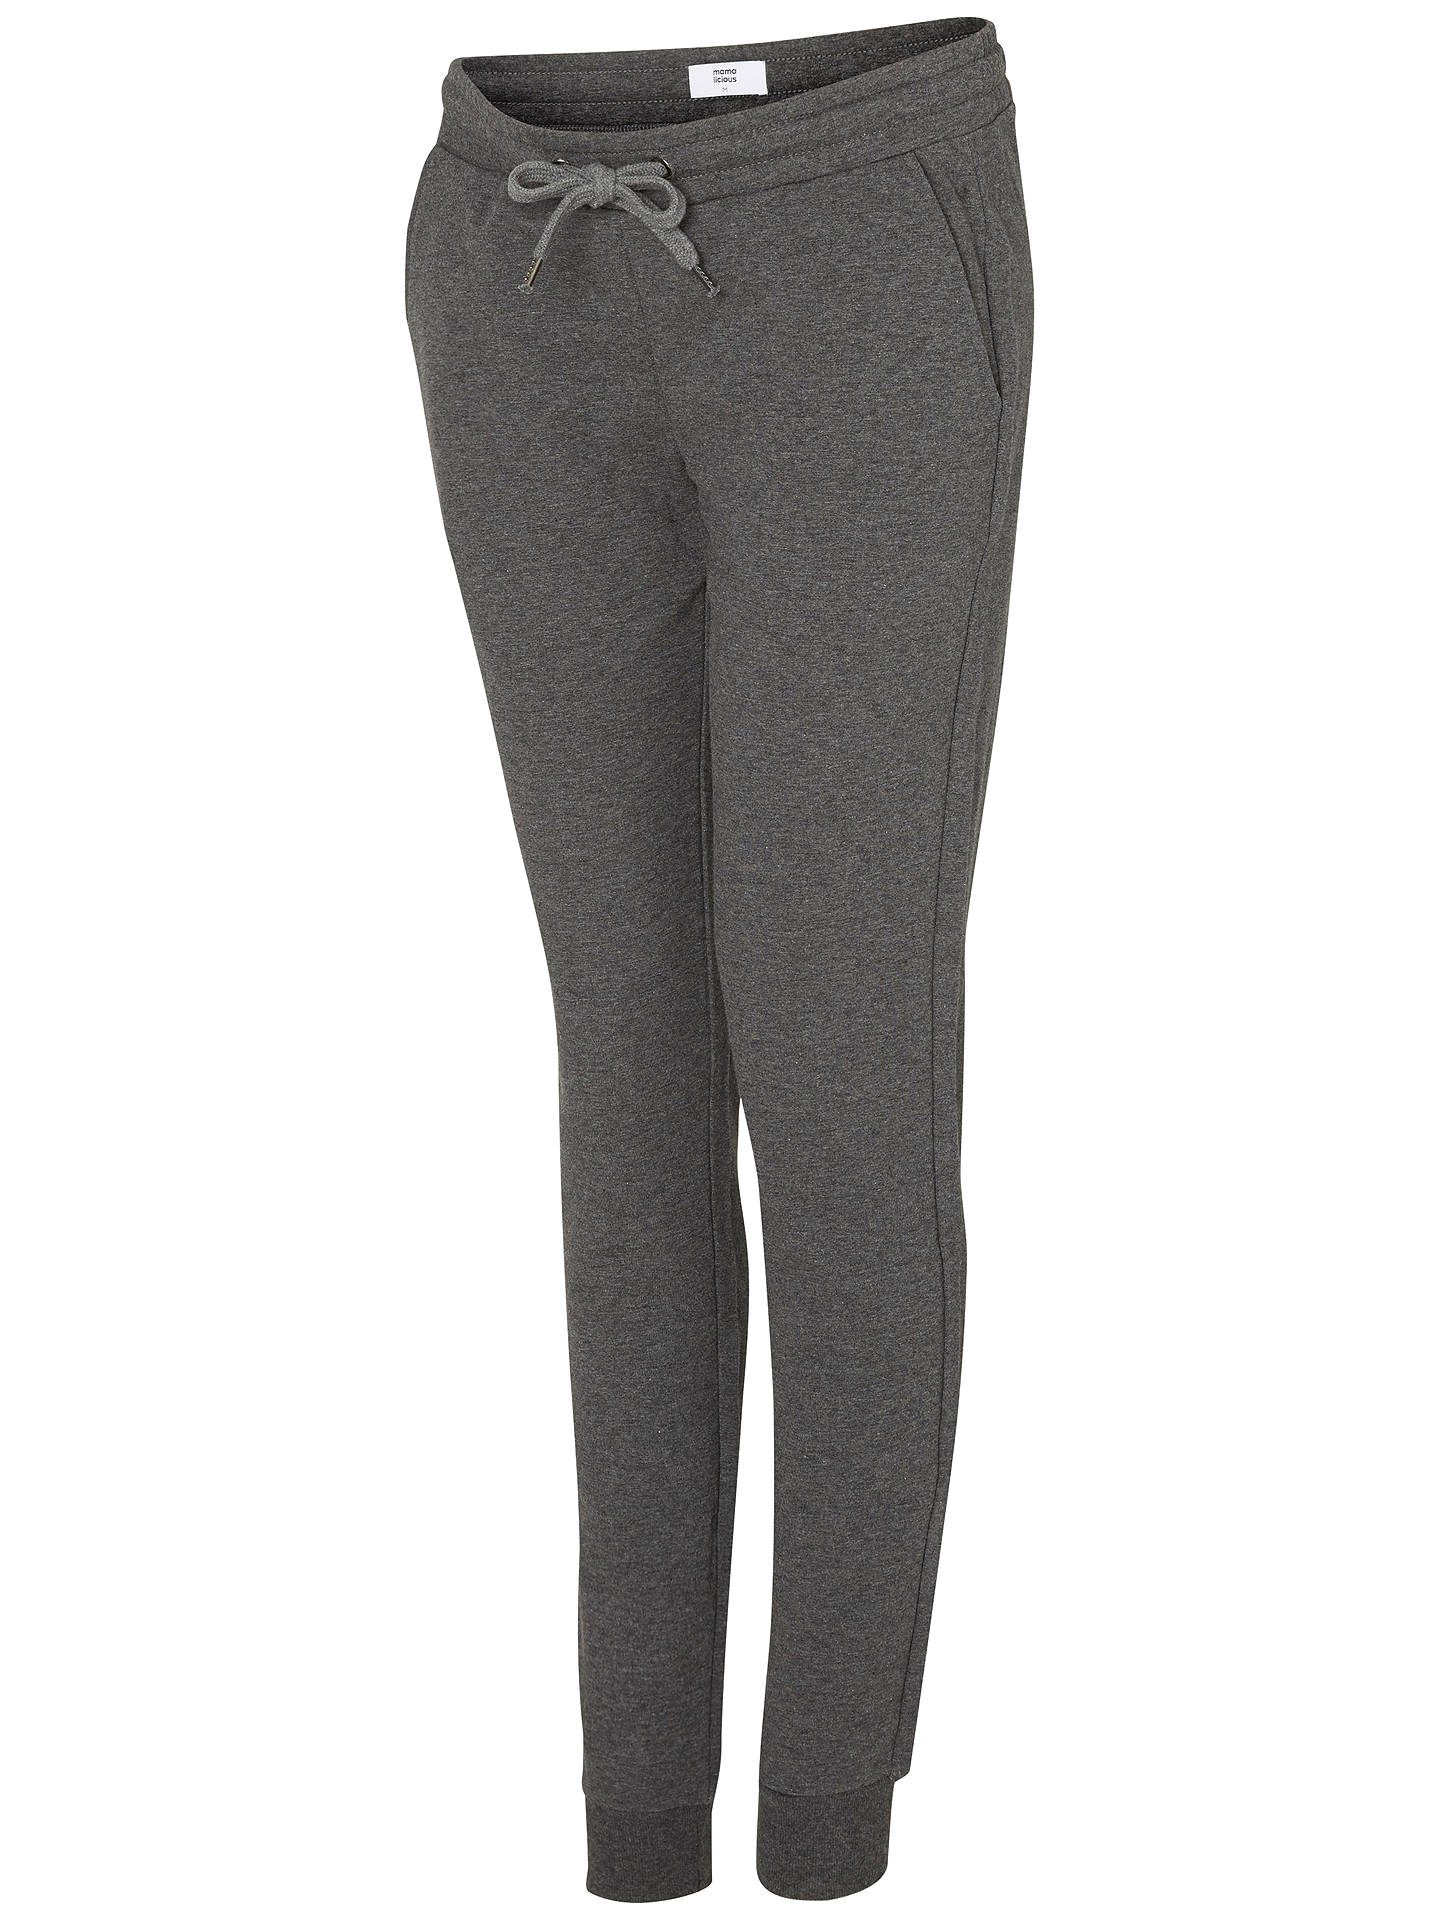 36e4b9ac6dd77 Buy Mamalicious Sammy Jersey Maternity Trousers, Grey Melange, S Online at  johnlewis.com ...